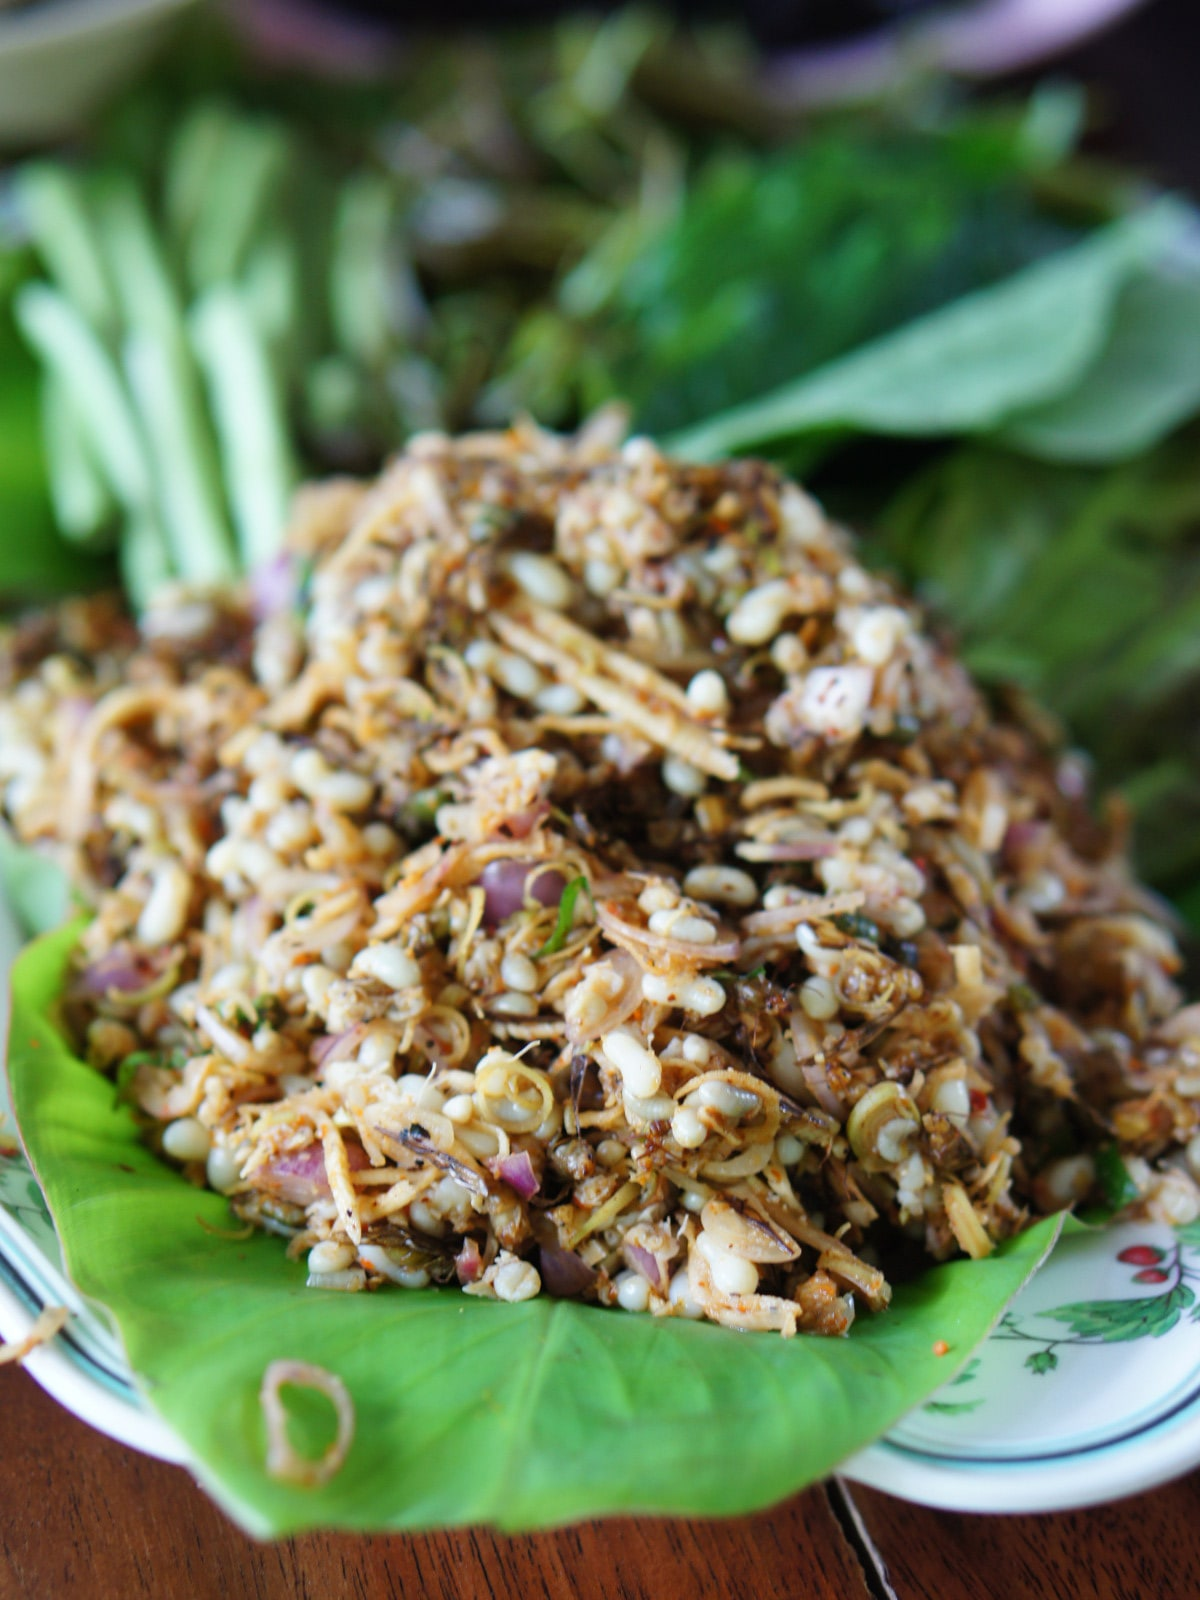 Thai Ant Egg Salad with Lemongrass